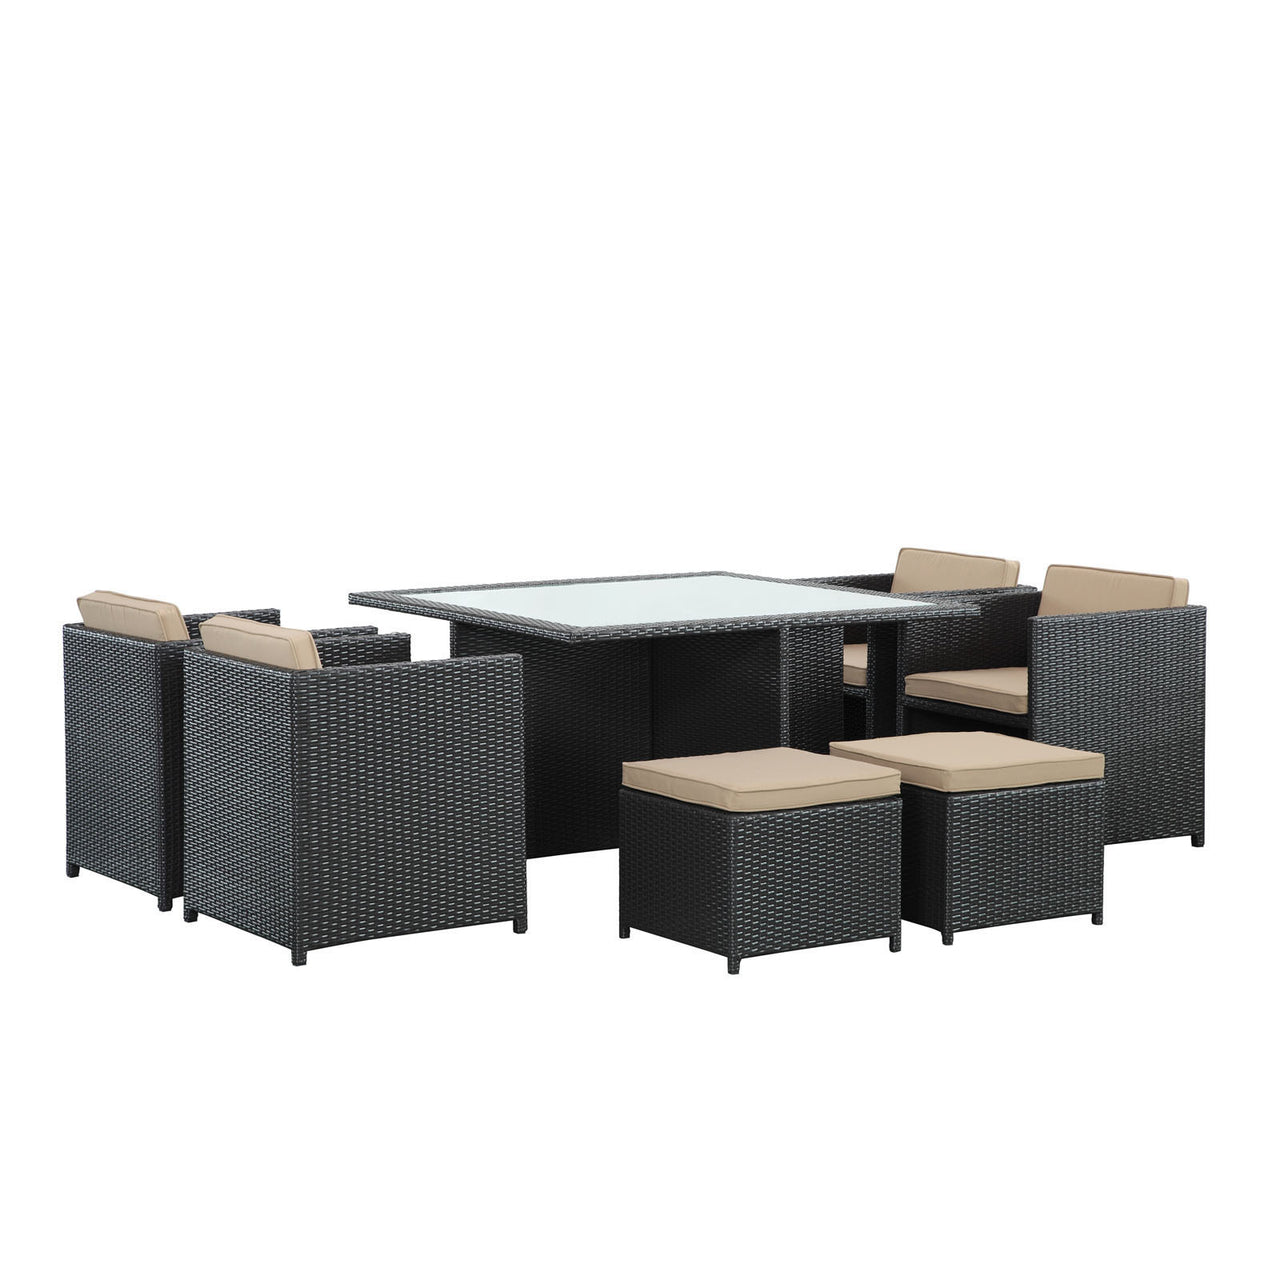 IVY 9 PIECE OUTDOOR PATIO DINING SET - Euro Living Furniture